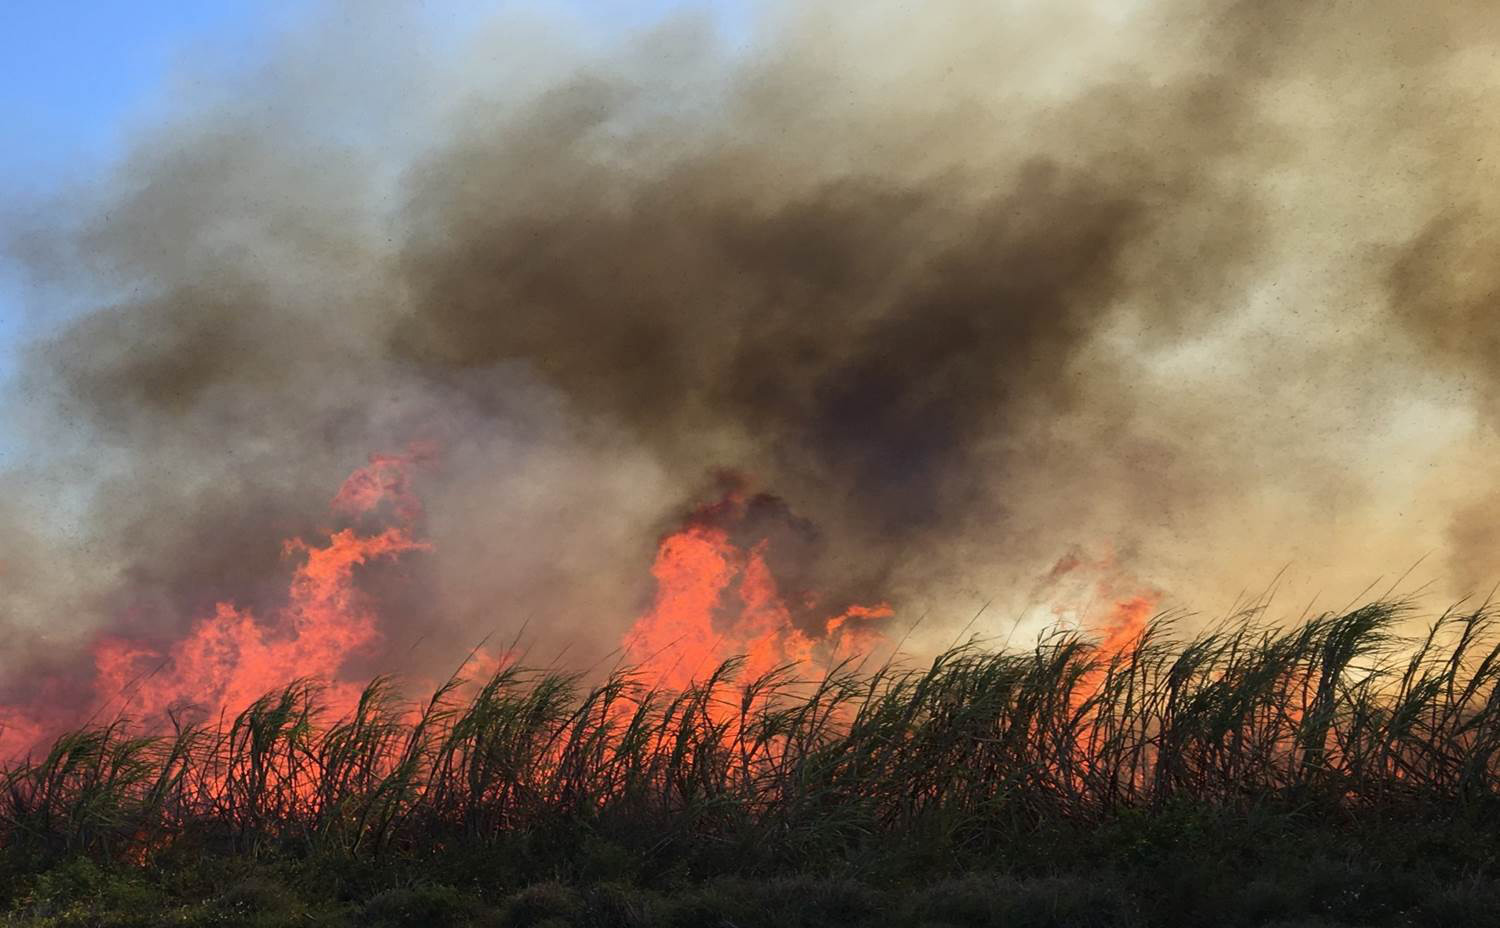 Flames envelope sugarcane stalks in a field near Clewiston.